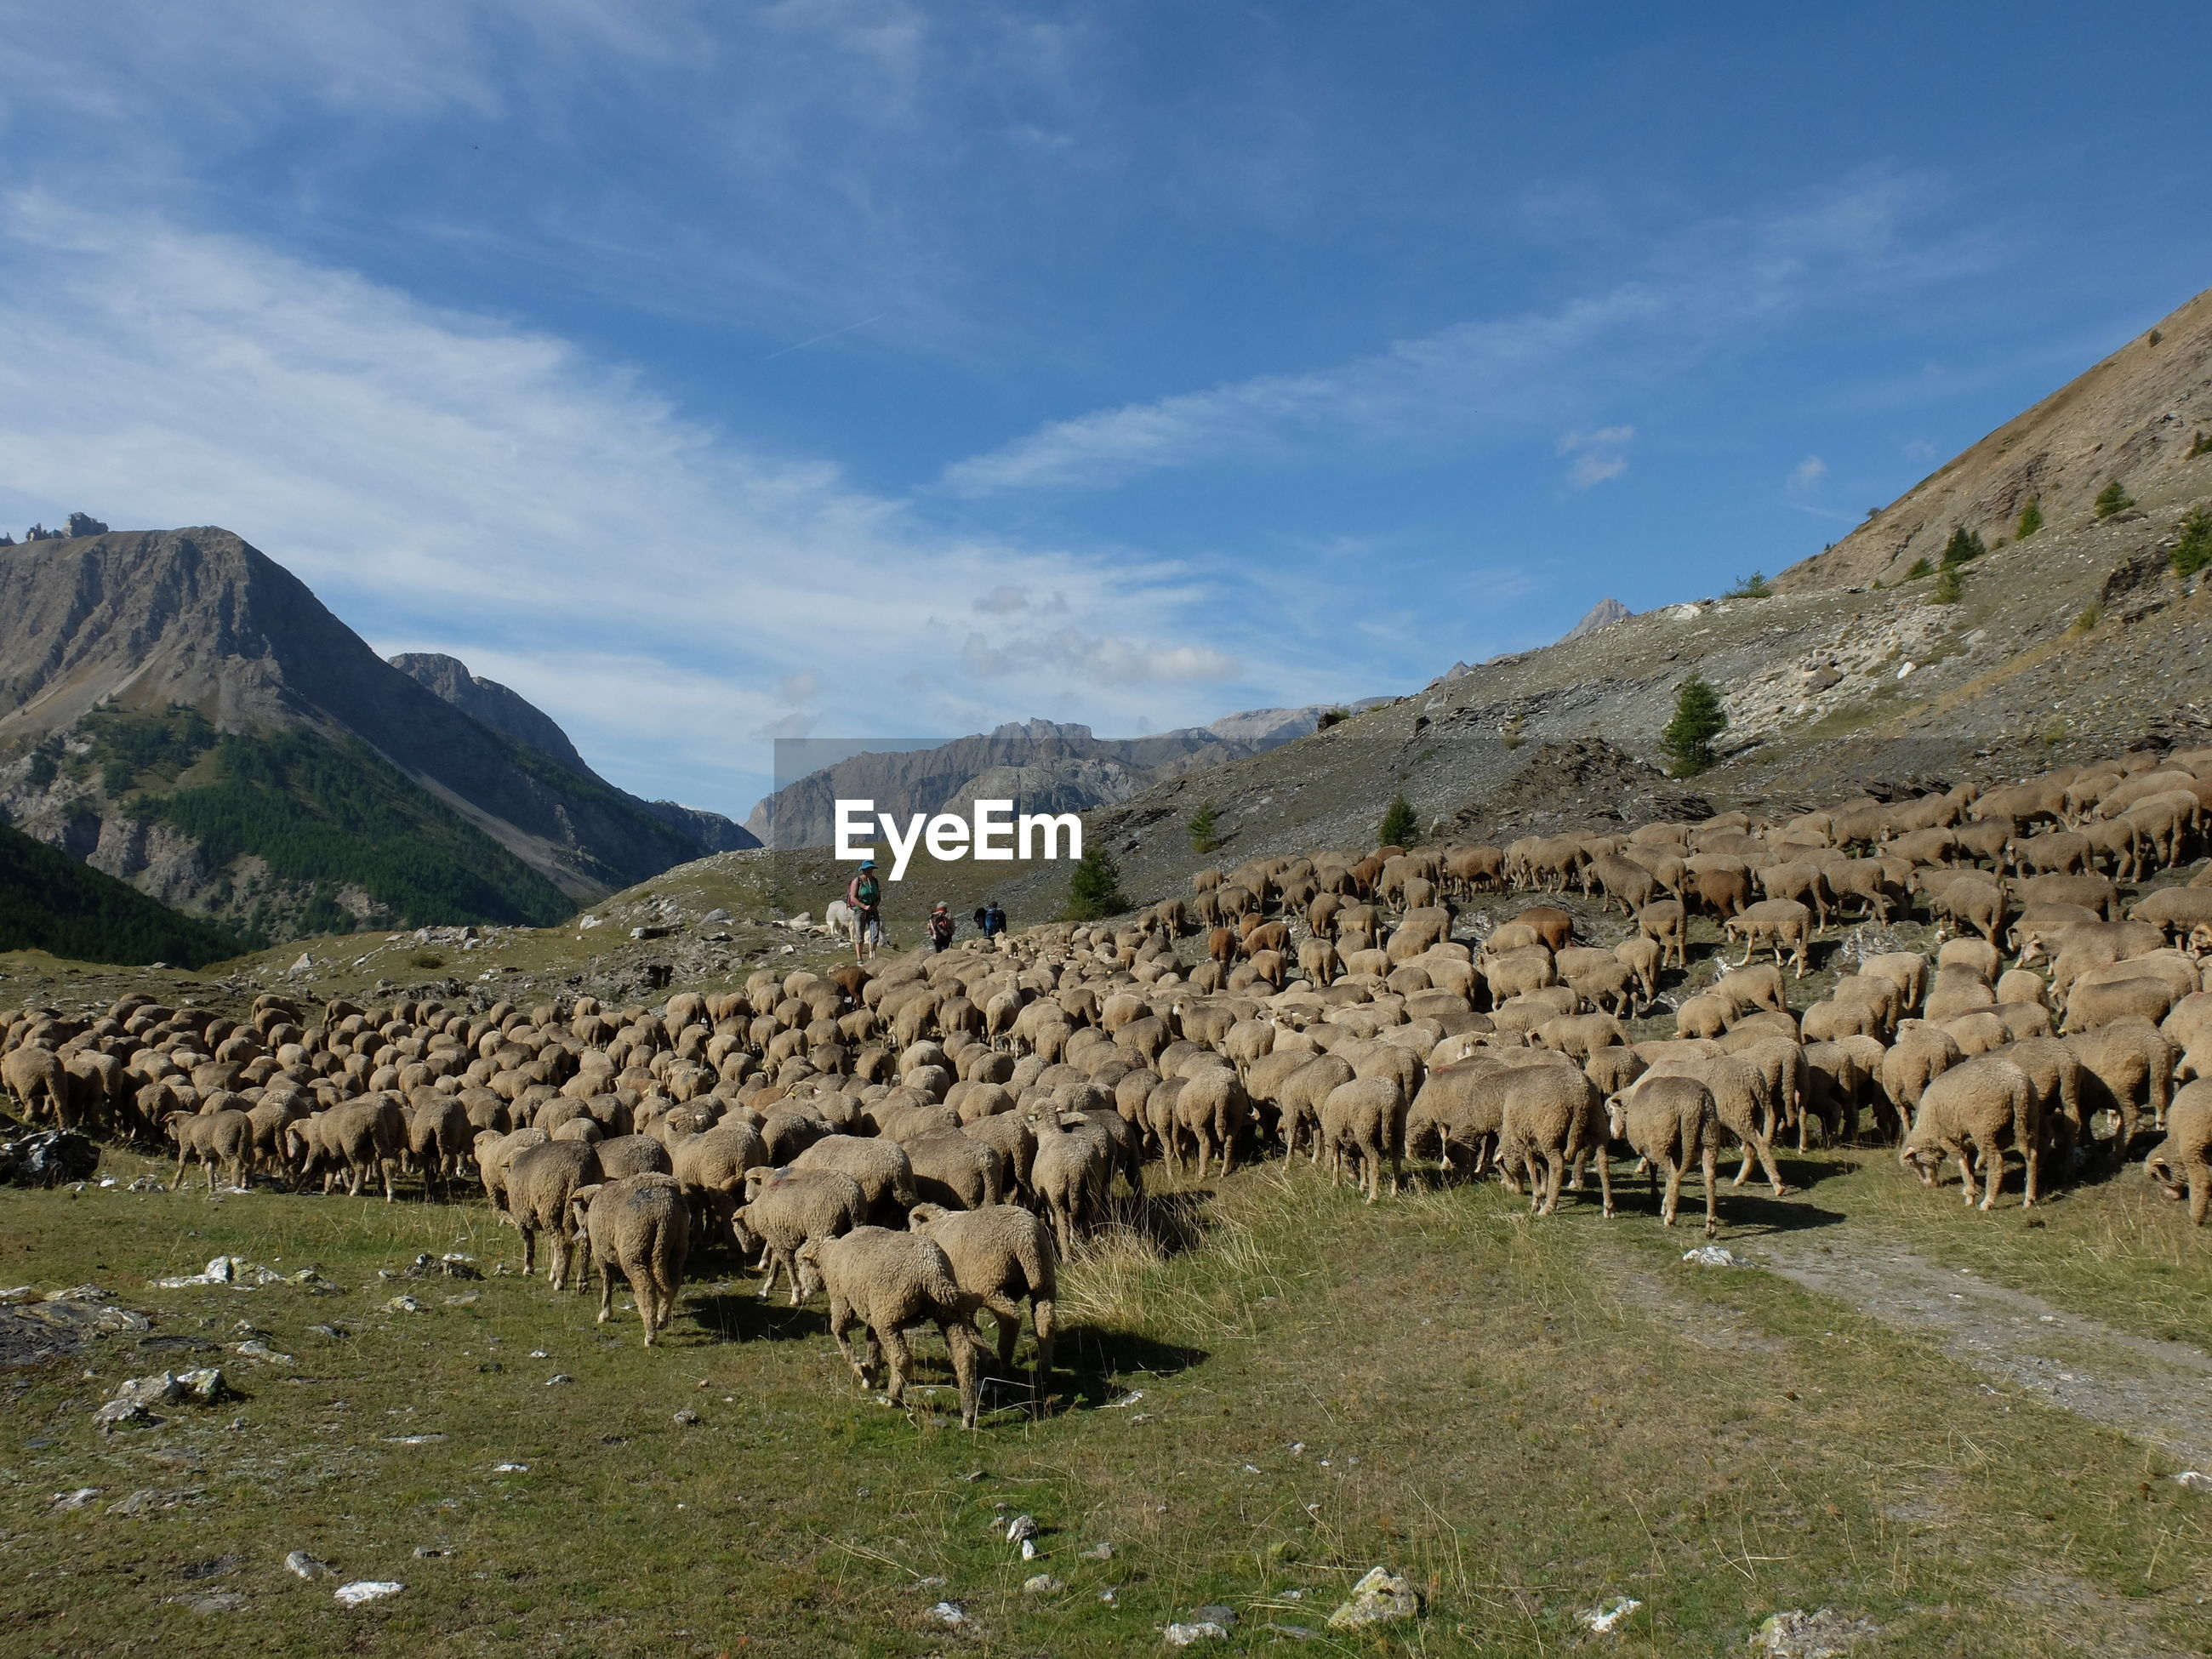 PANORAMIC VIEW OF A SHEEP ON LANDSCAPE